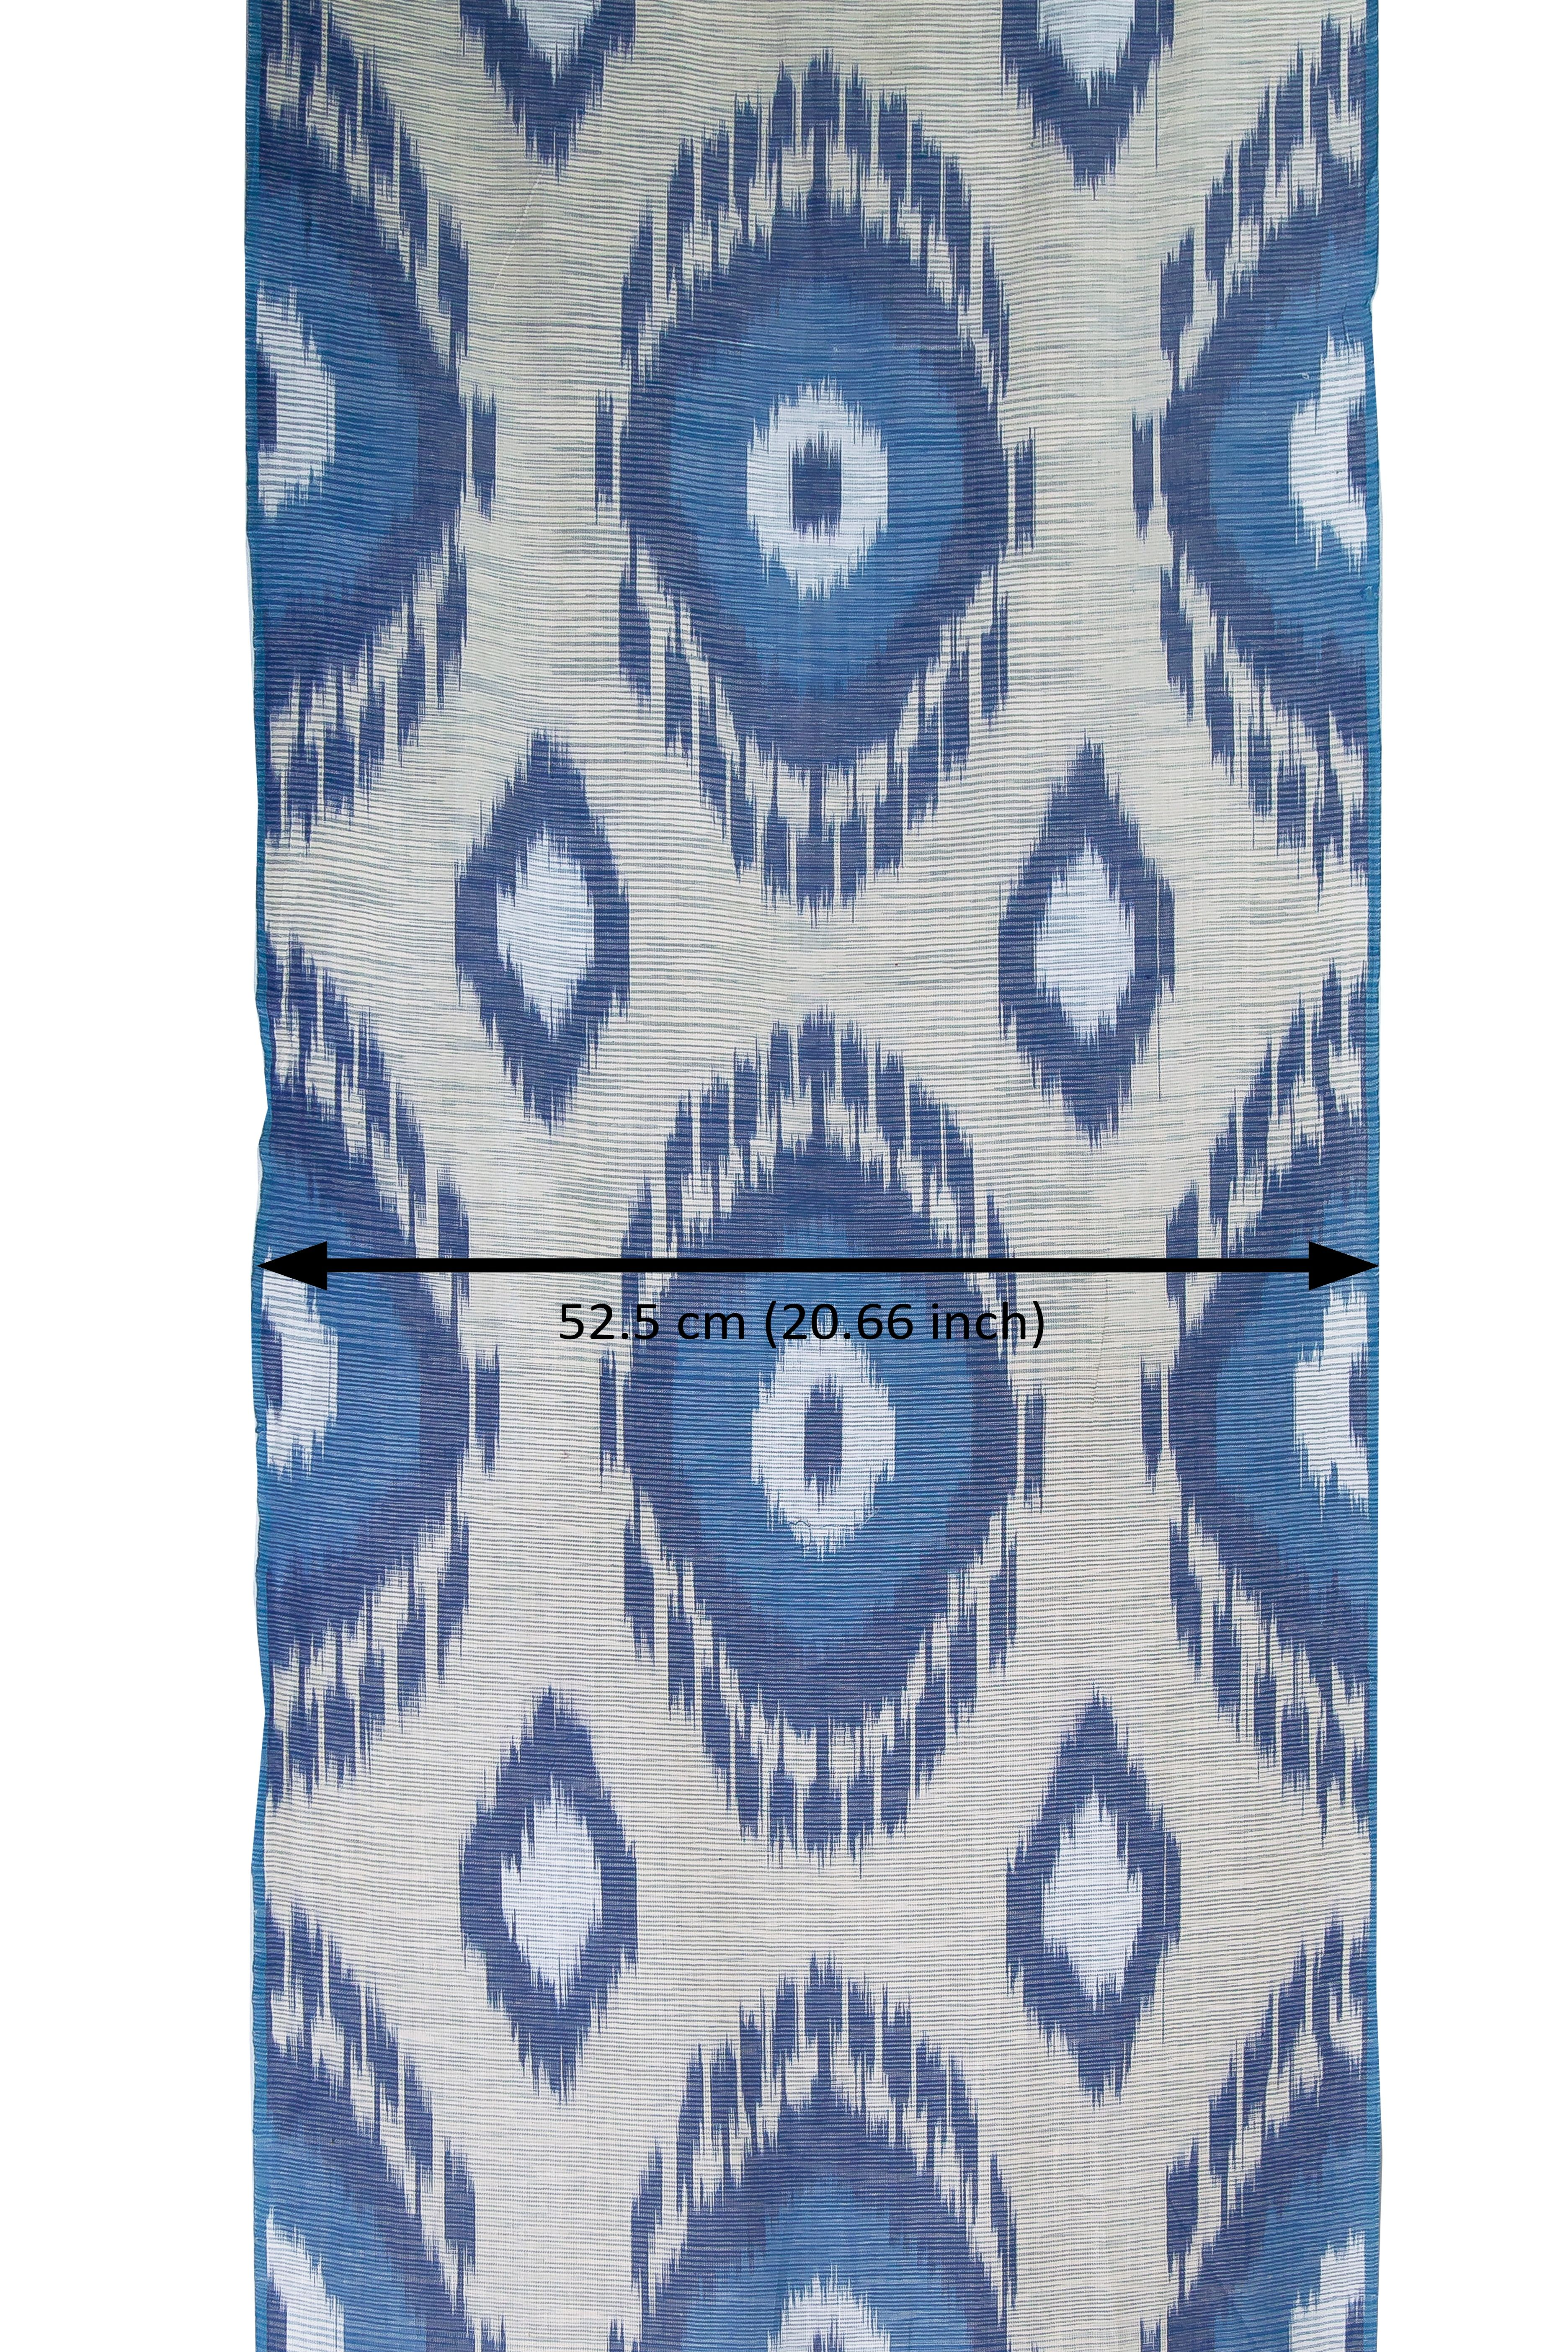 Blue Cotton Ikat Fabric By The Yard Upholstery Handwoven Fabric